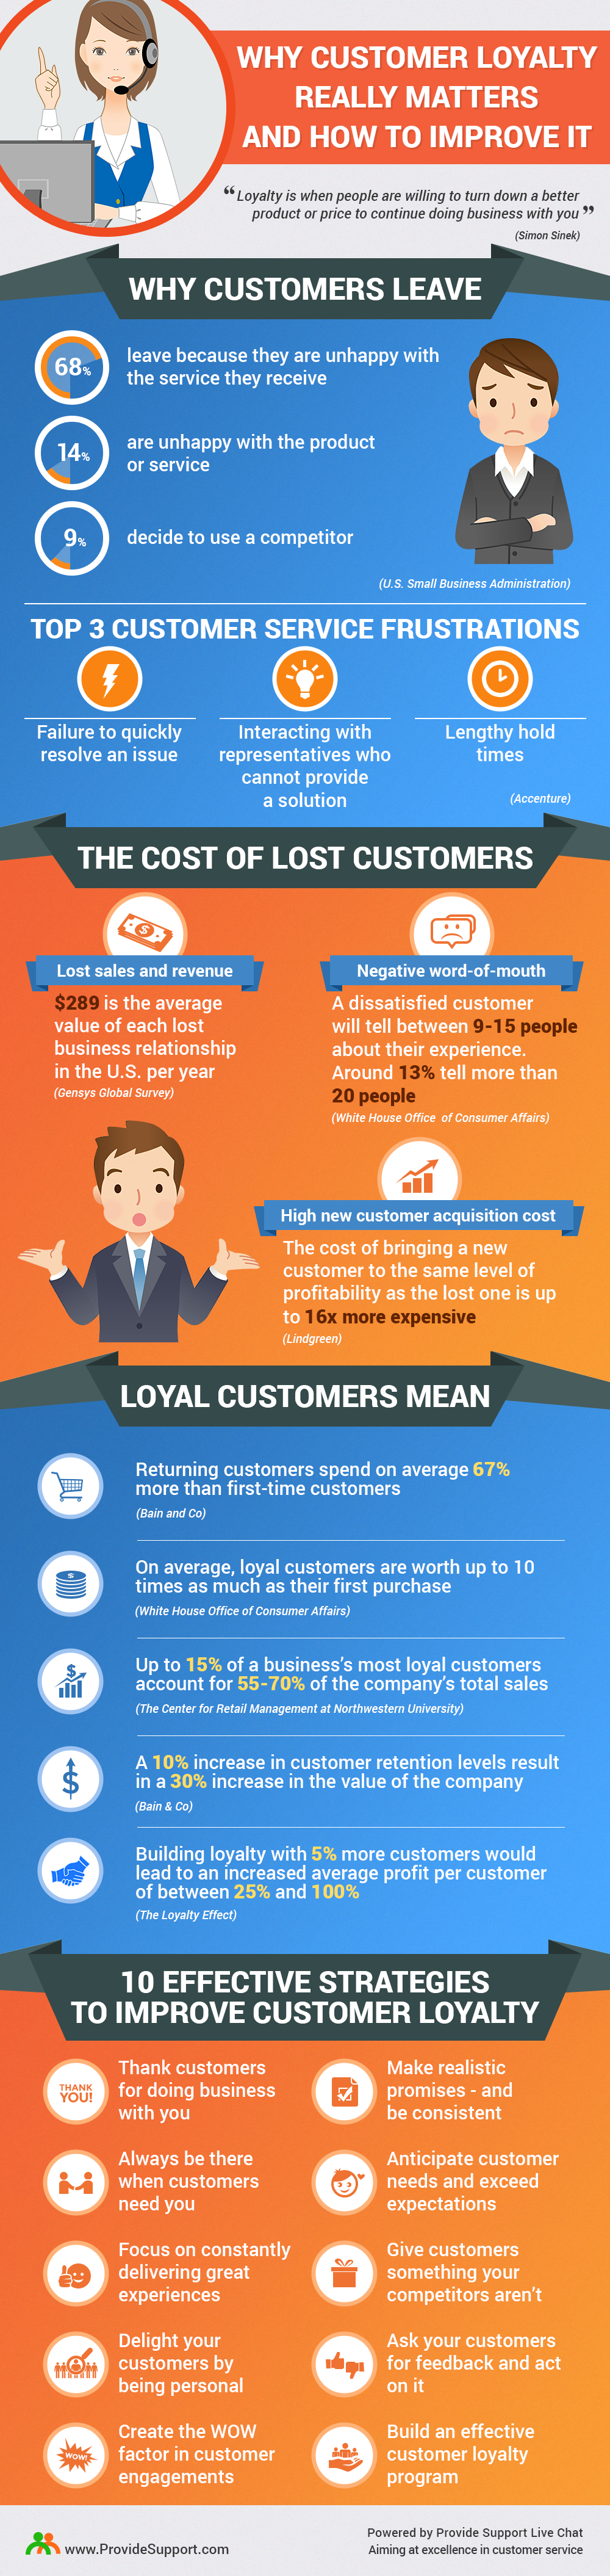 Why Customer Loyalty Matters and How to Improve it